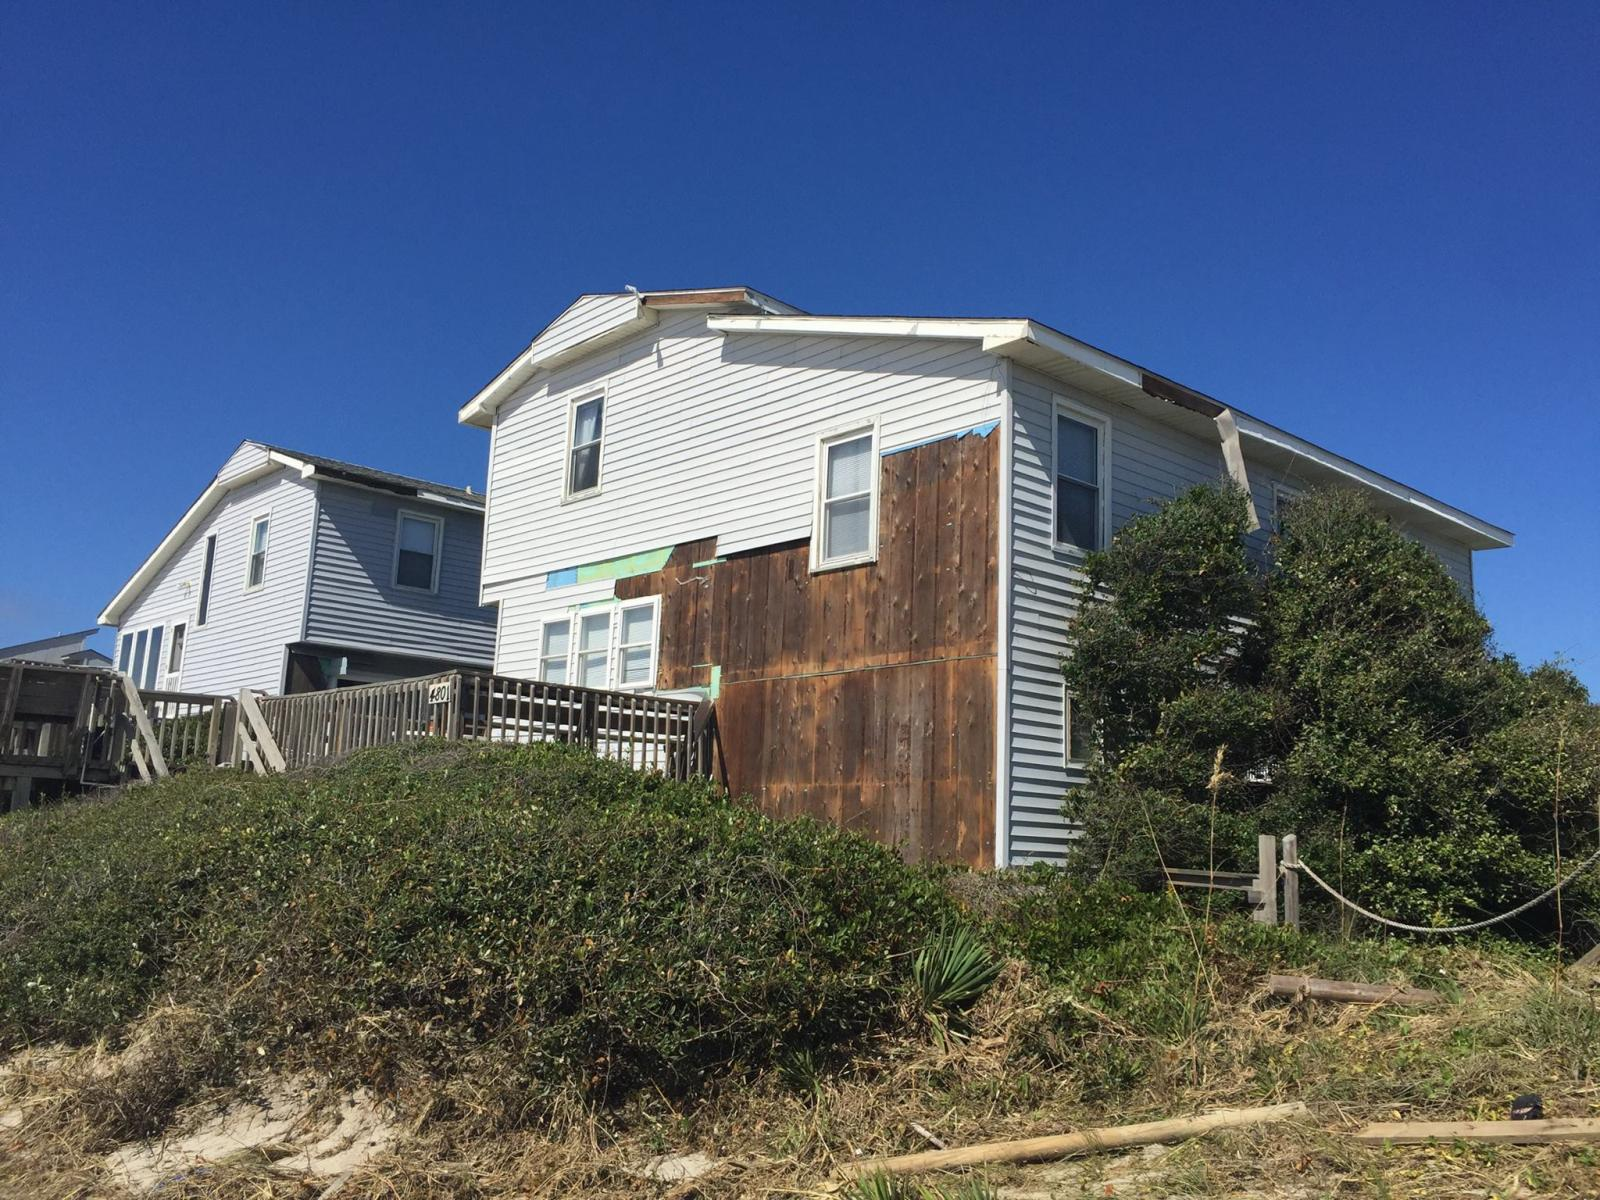 Oak Island, NC.  Siding damage to a home on West Beach Drive caused by Matthew's strong winds.